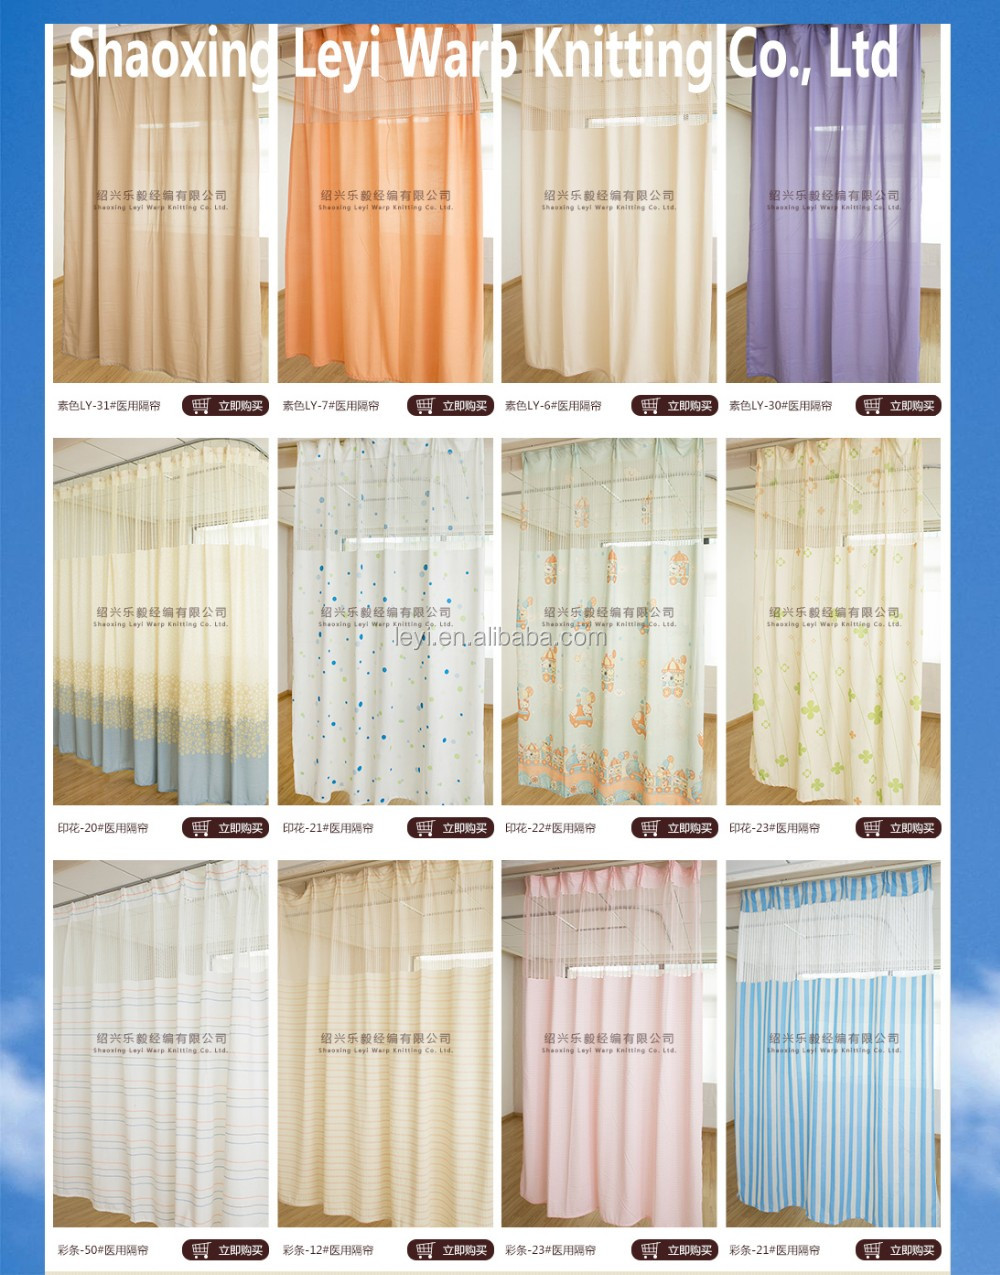 New Latest Design Privacy Hospital Curtains LY Medical Hospital Cubicle  Curtain Drape Fabric